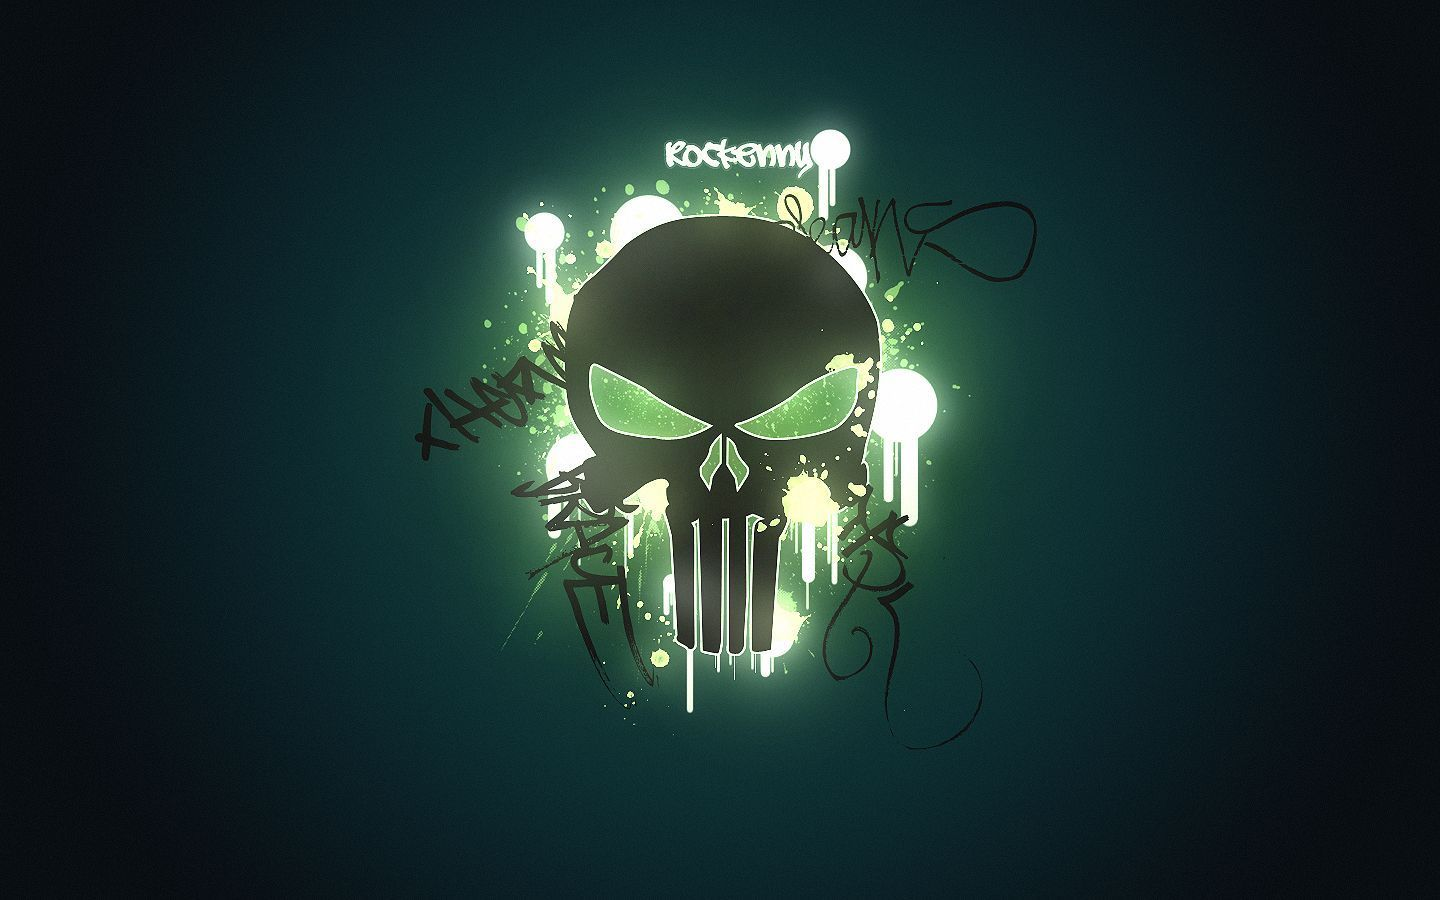 Awesome Skull Wallpapers Free Wallpaper Download 1440 900 Awesome